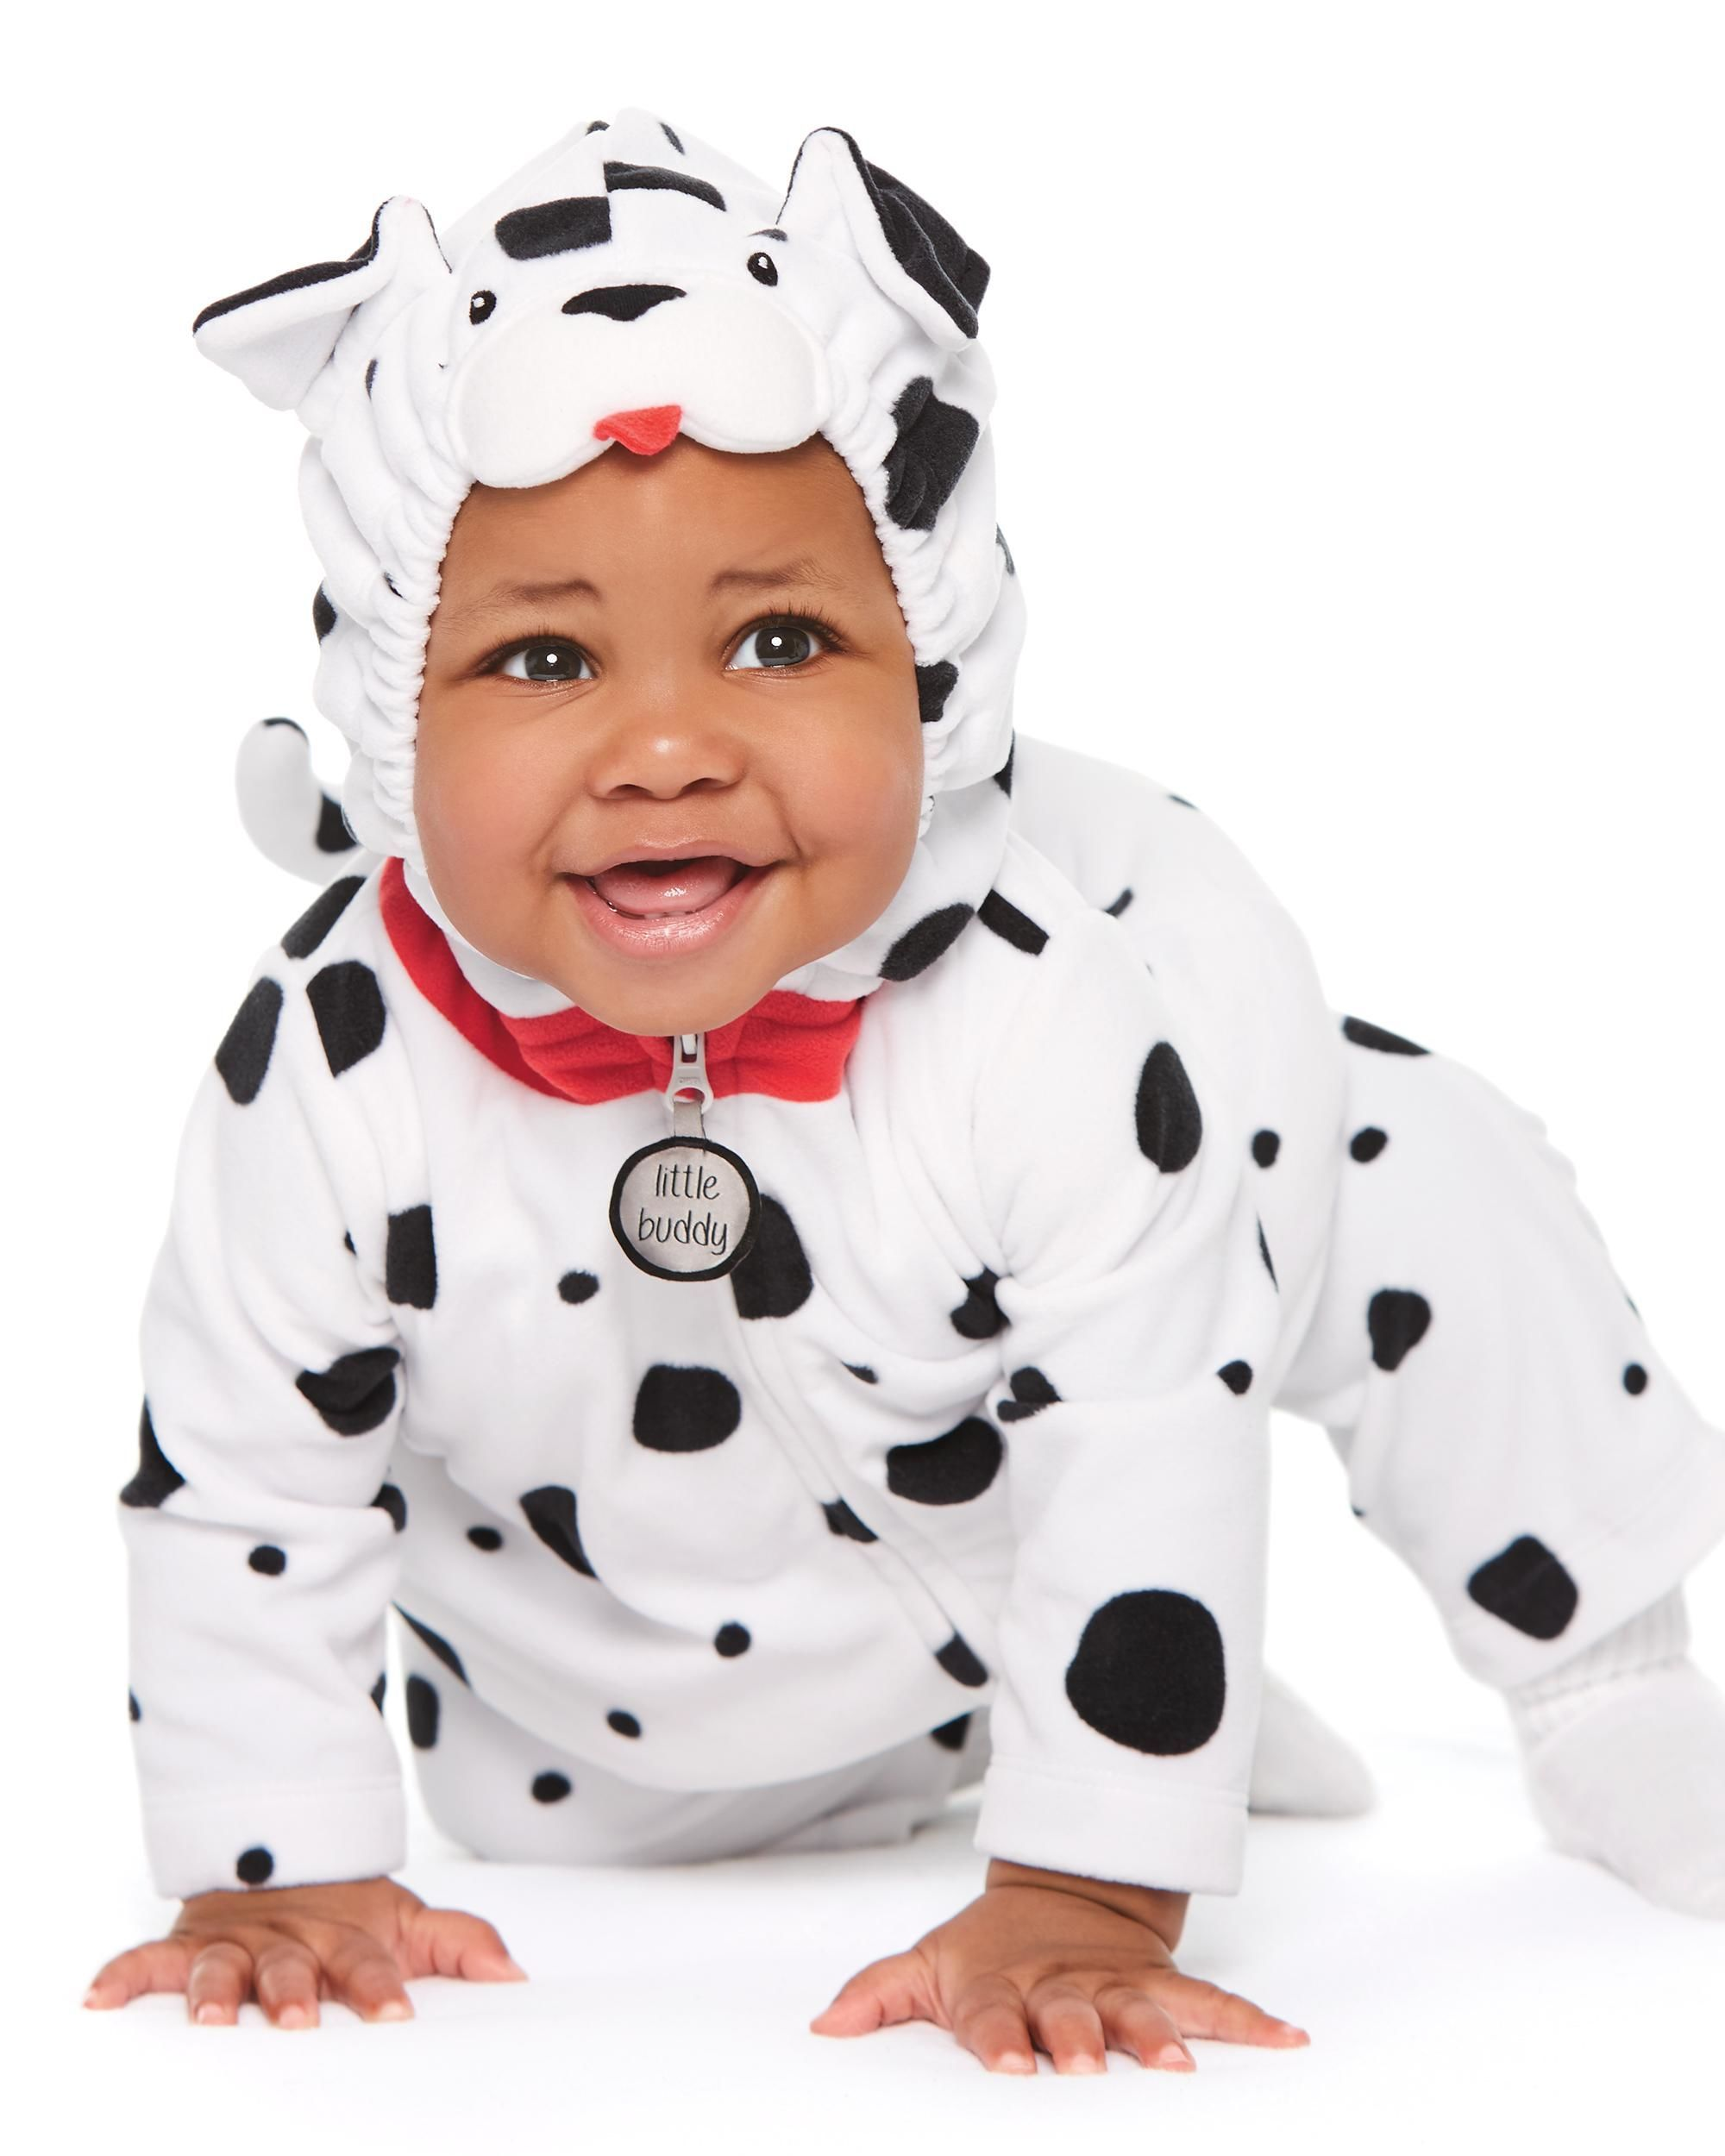 Little Dalmatian Halloween Costume  sc 1 st  Pinterest & Little Dalmatian Halloween Costume | Halloween costumes